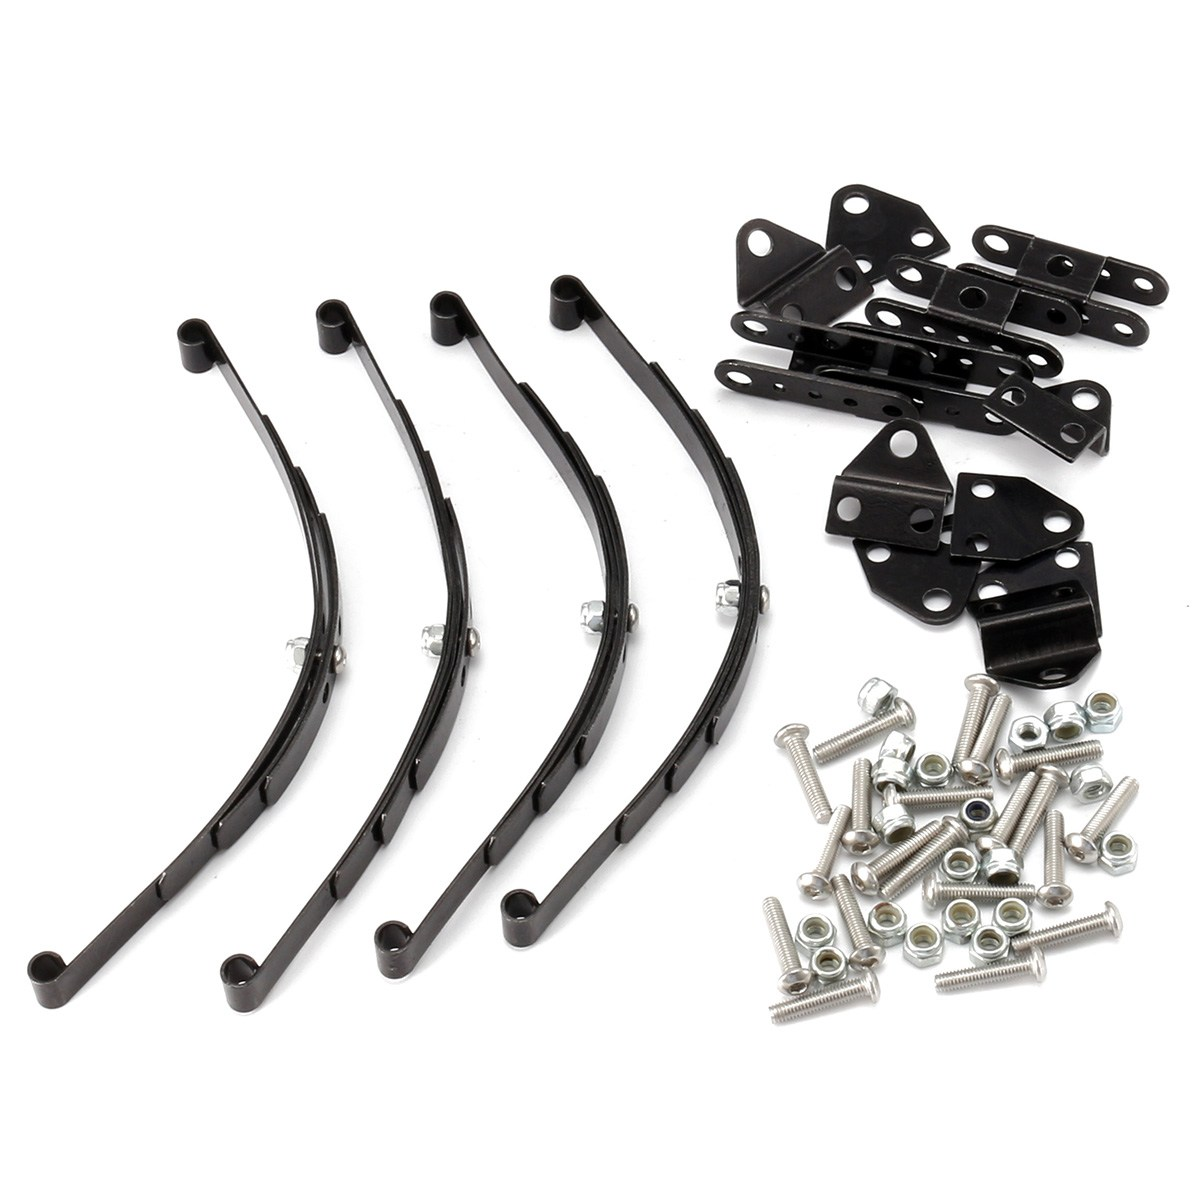 4pcs 1/10 Leaf Springs Set HighLift Chassis For 1/10 D90 RC Crawler Car Parts Black4pcs 1/10 Leaf Springs Set HighLift Chassis For 1/10 D90 RC Crawler Car Parts Black